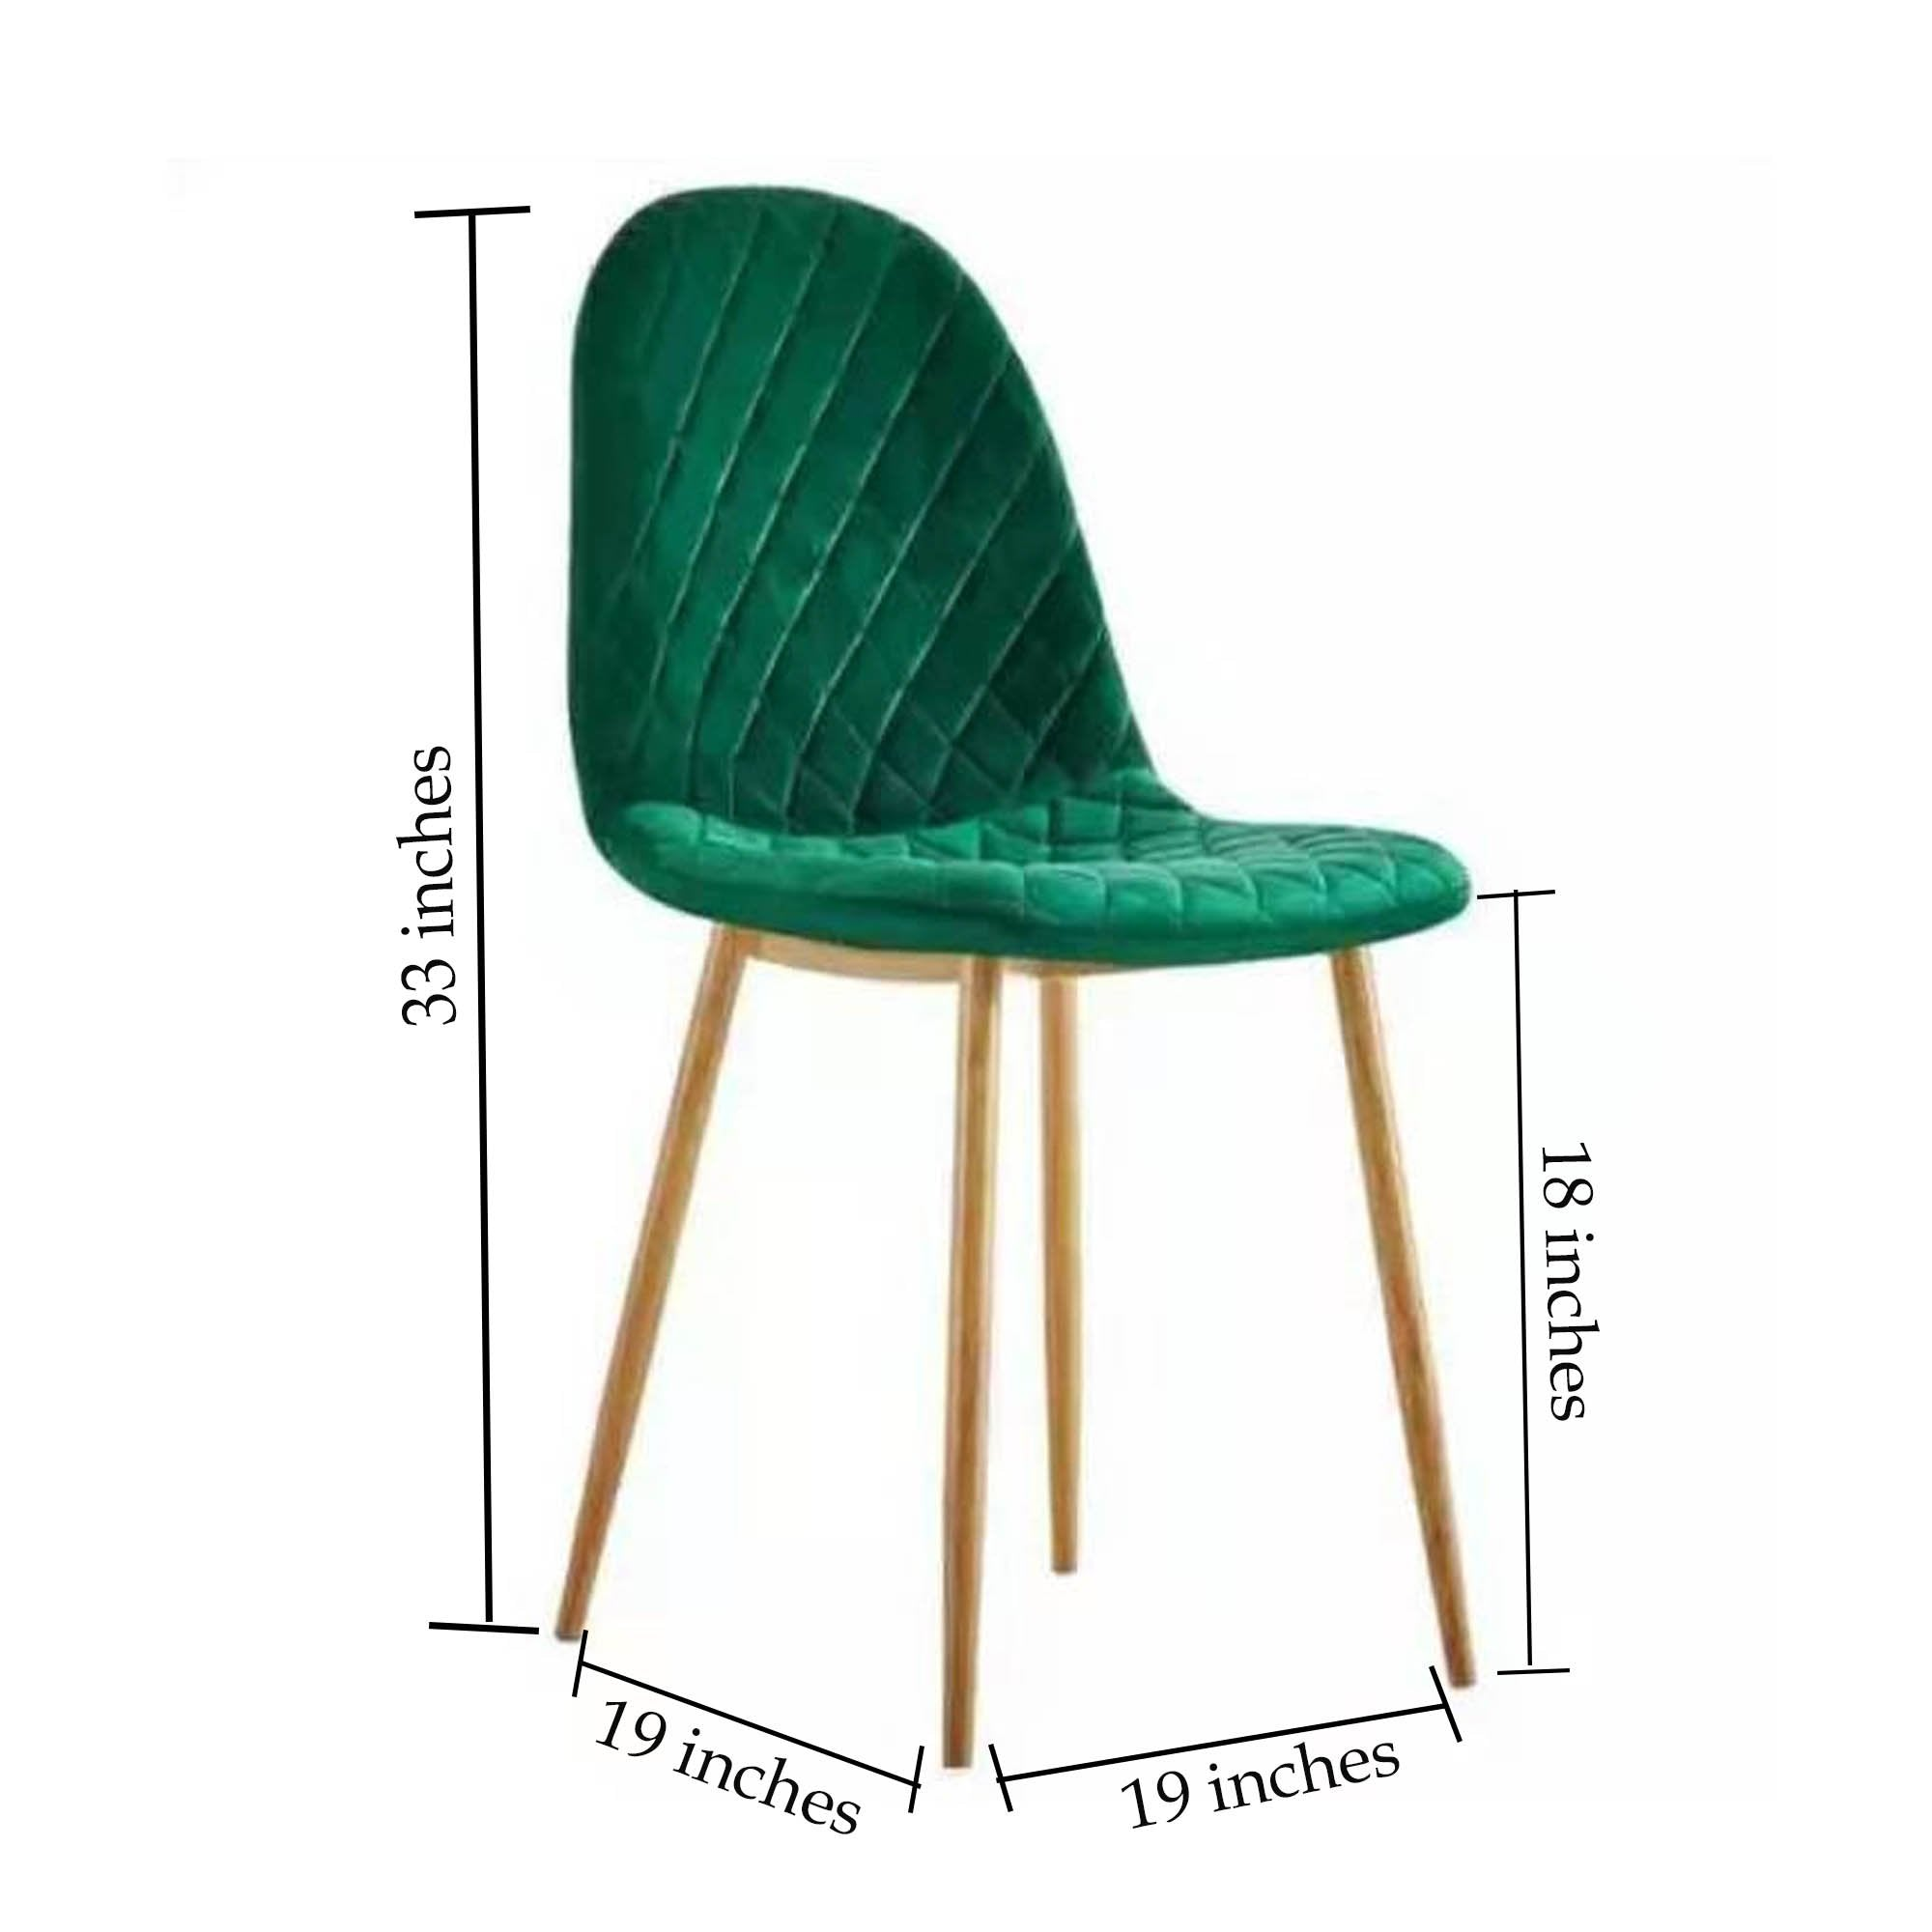 Green Velvet Fabric with Golden Legs Armless Chair